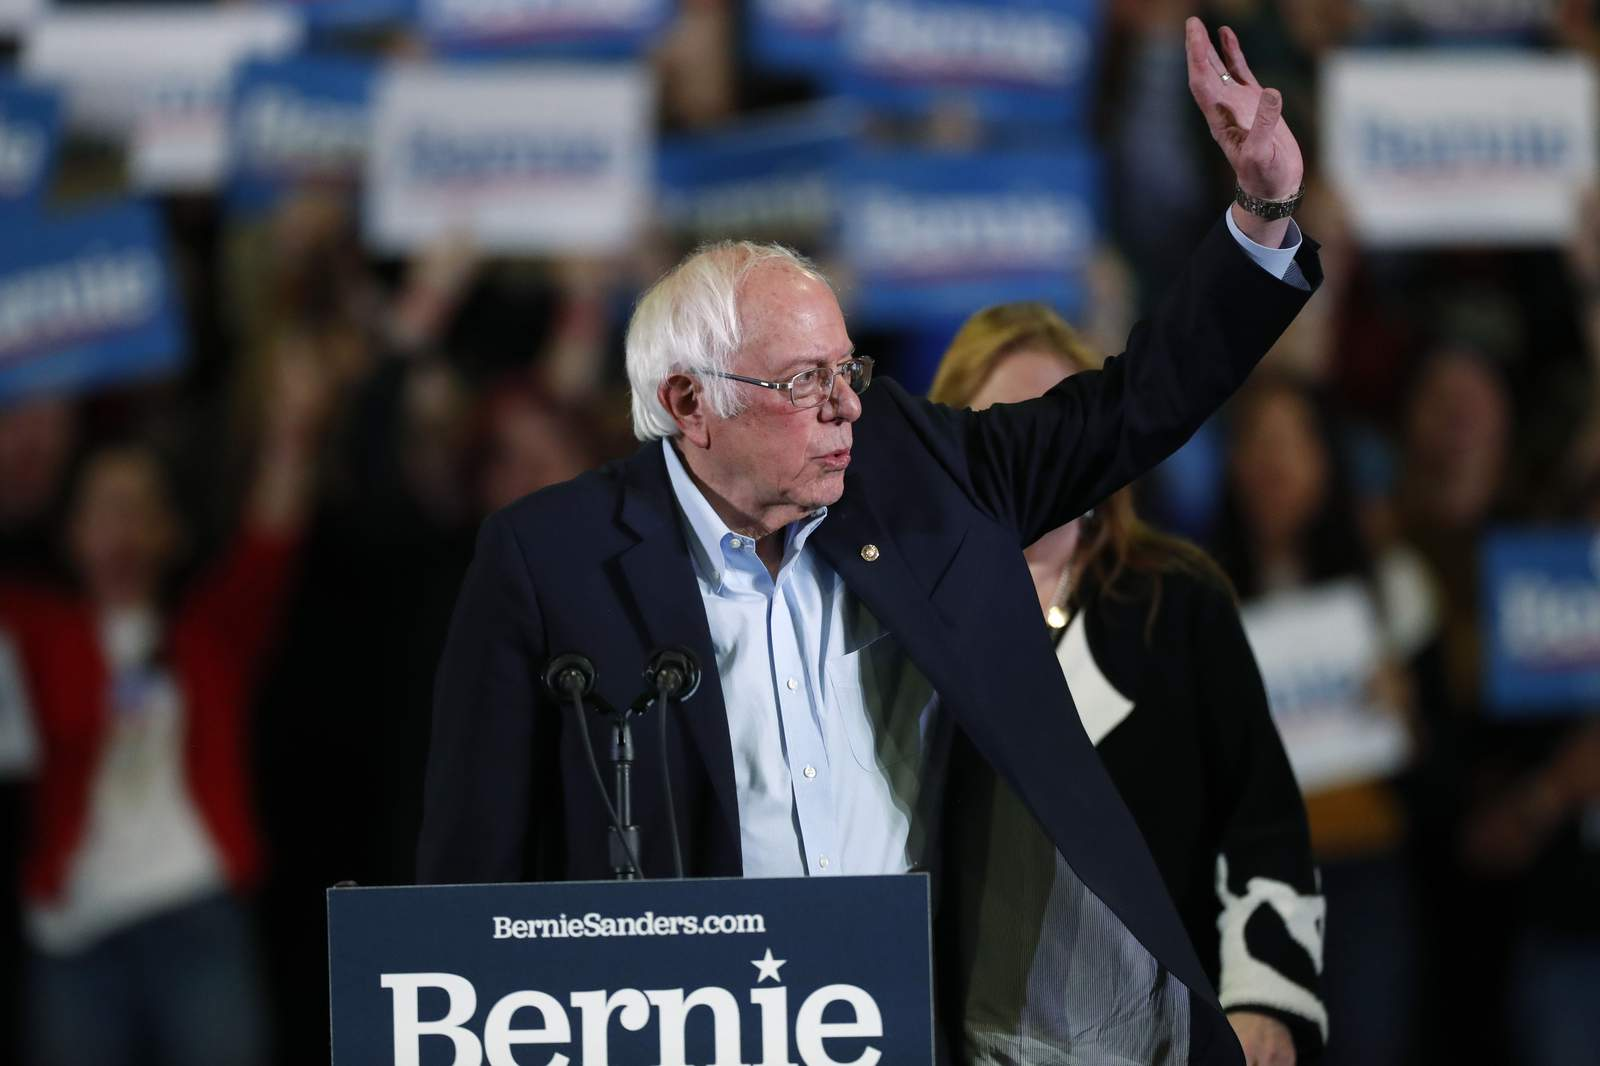 Bernie Sanders to hold campaign rally in San Antonio